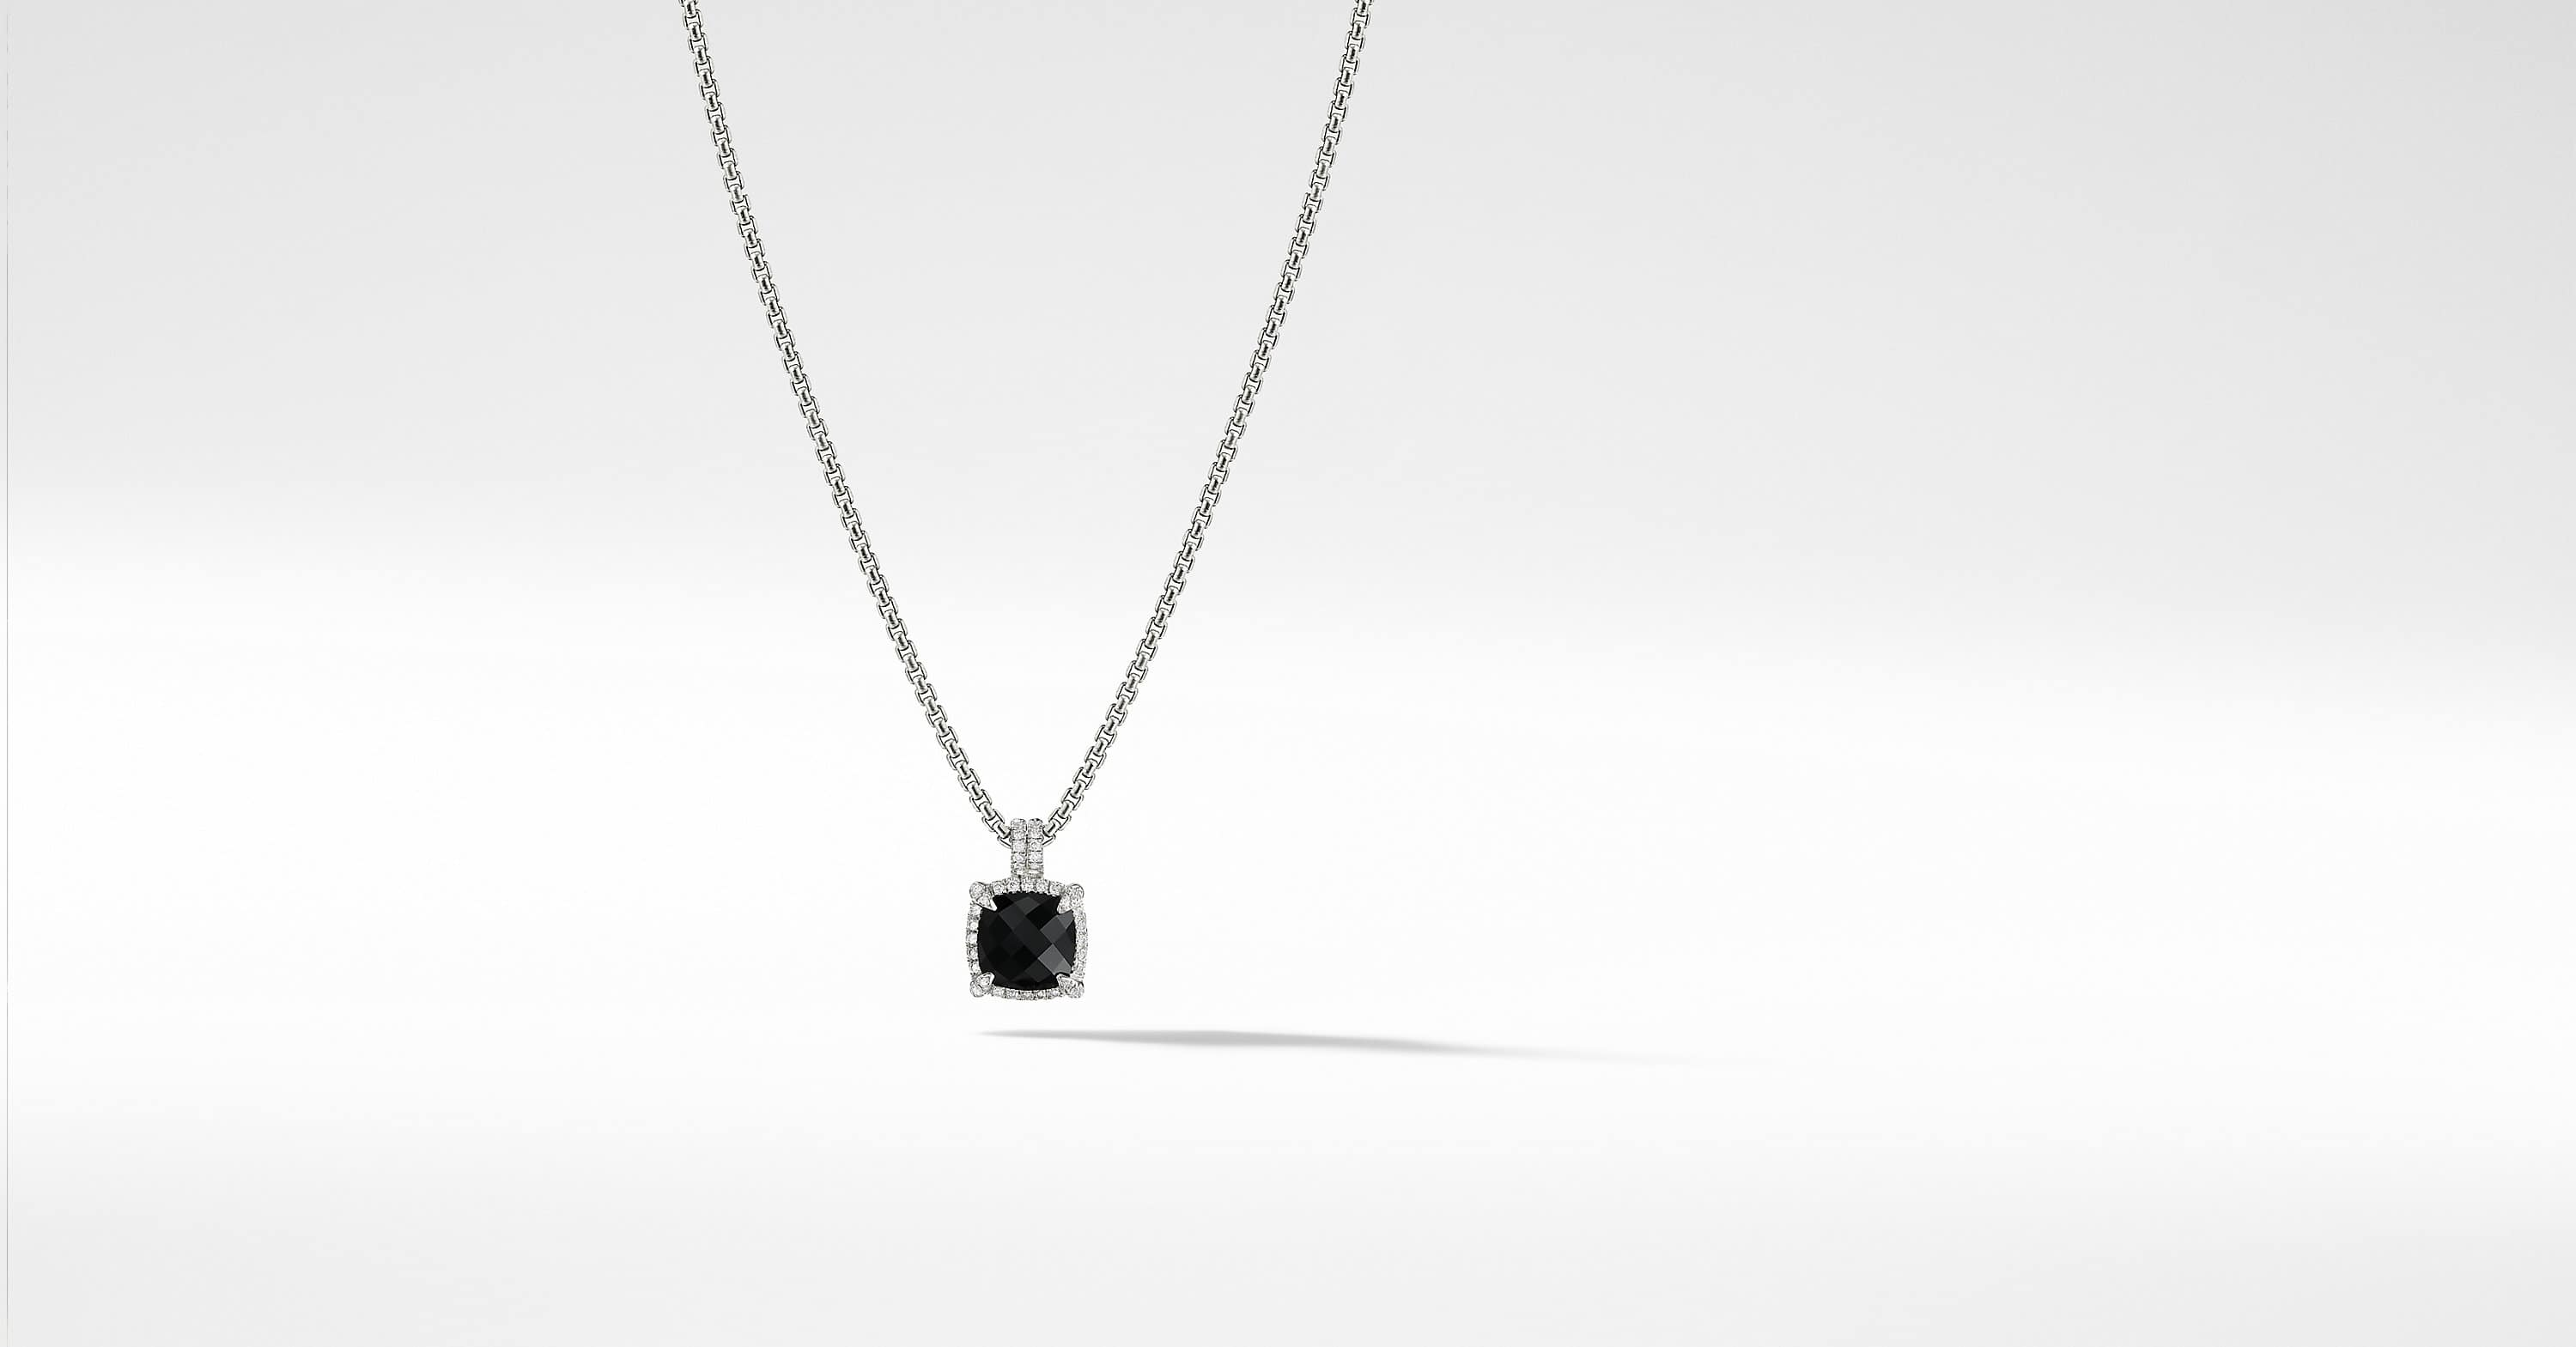 Chatelaine Pave Bezel Pendant Necklace with Diamonds, 9mm